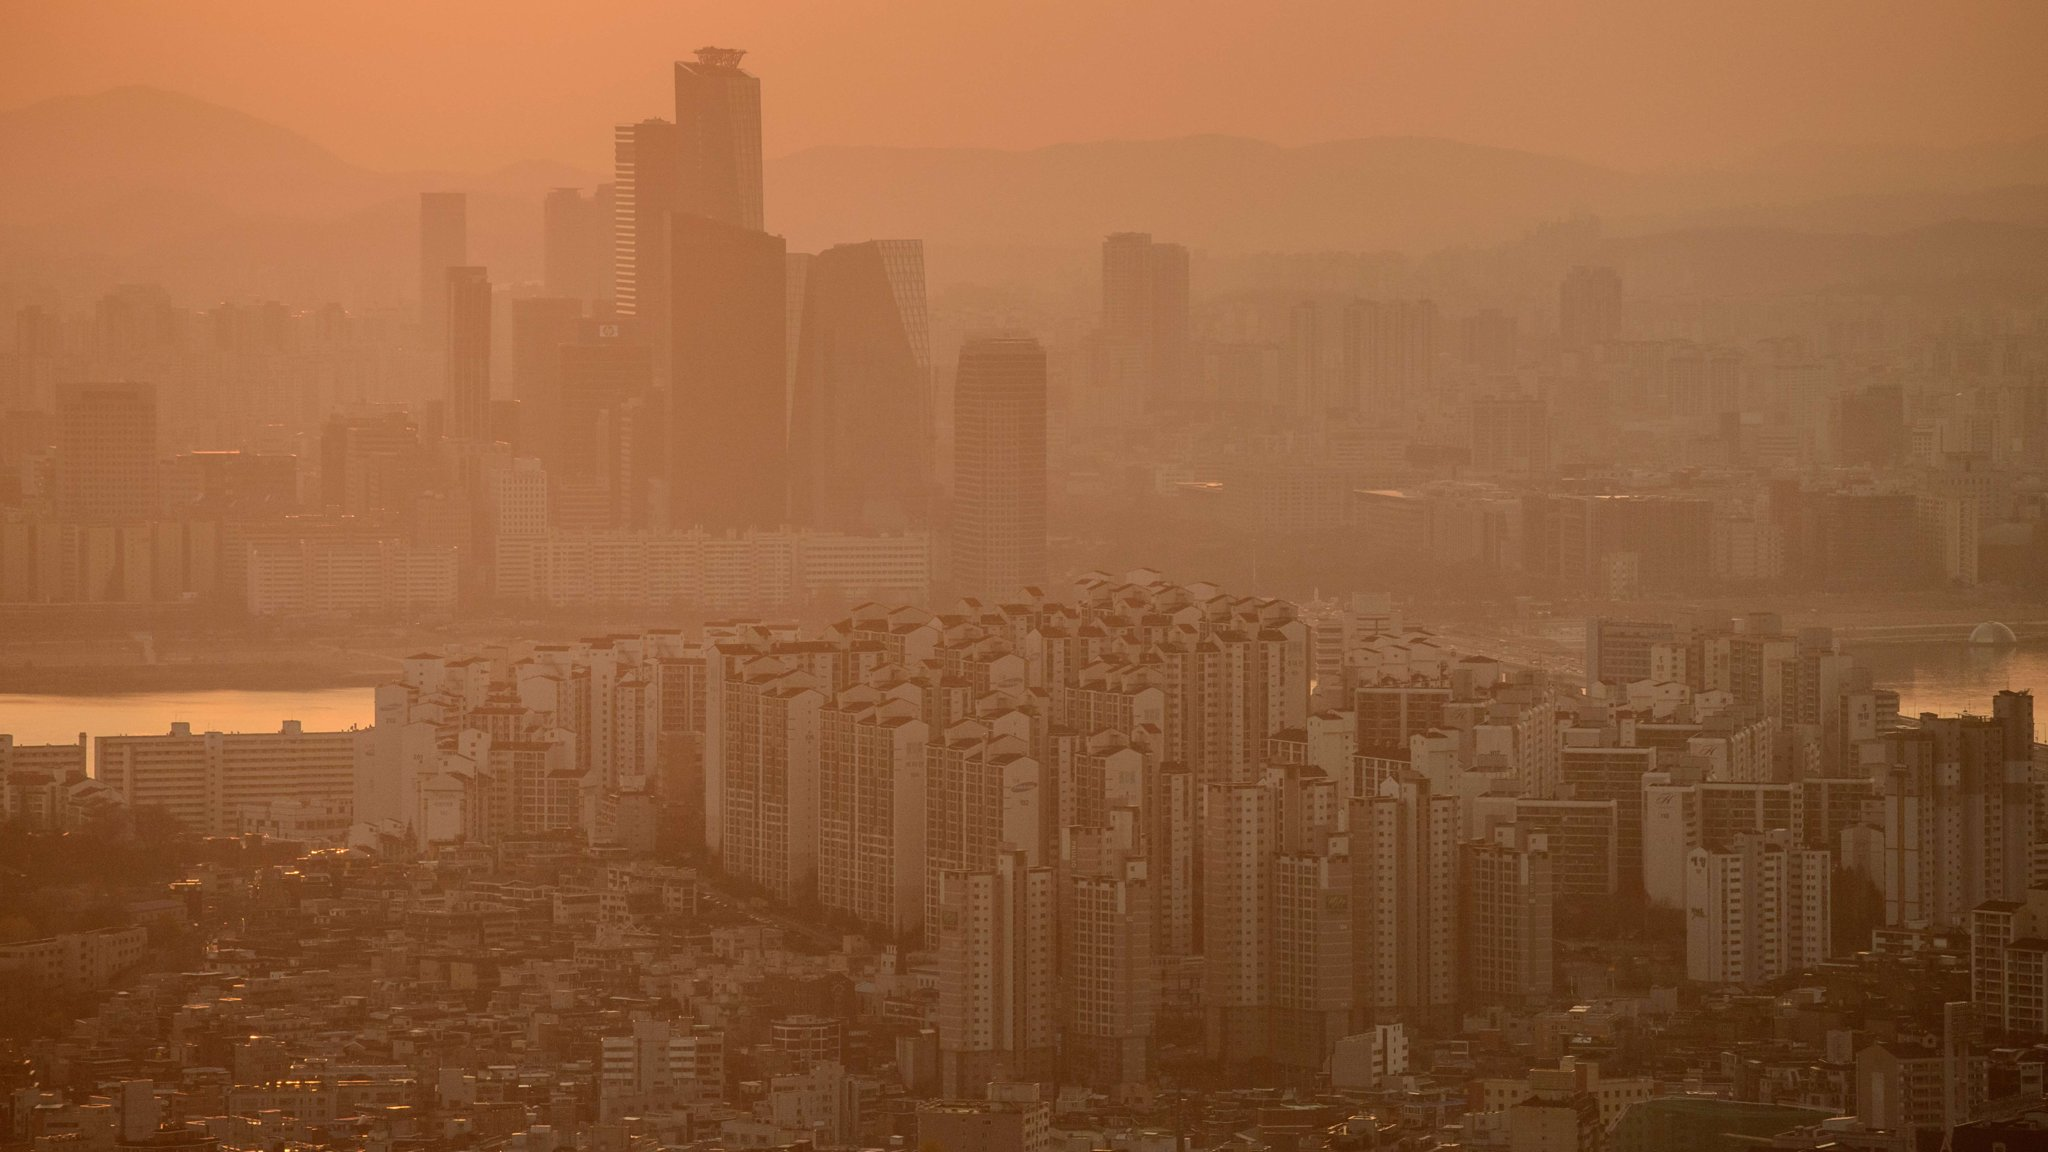 air pollution in south korea When it comes to air pollution, china gets most of the attention as one of asia's worst offenders (and rightly so) but south korea has a massive pollution problem all its own, earning the.